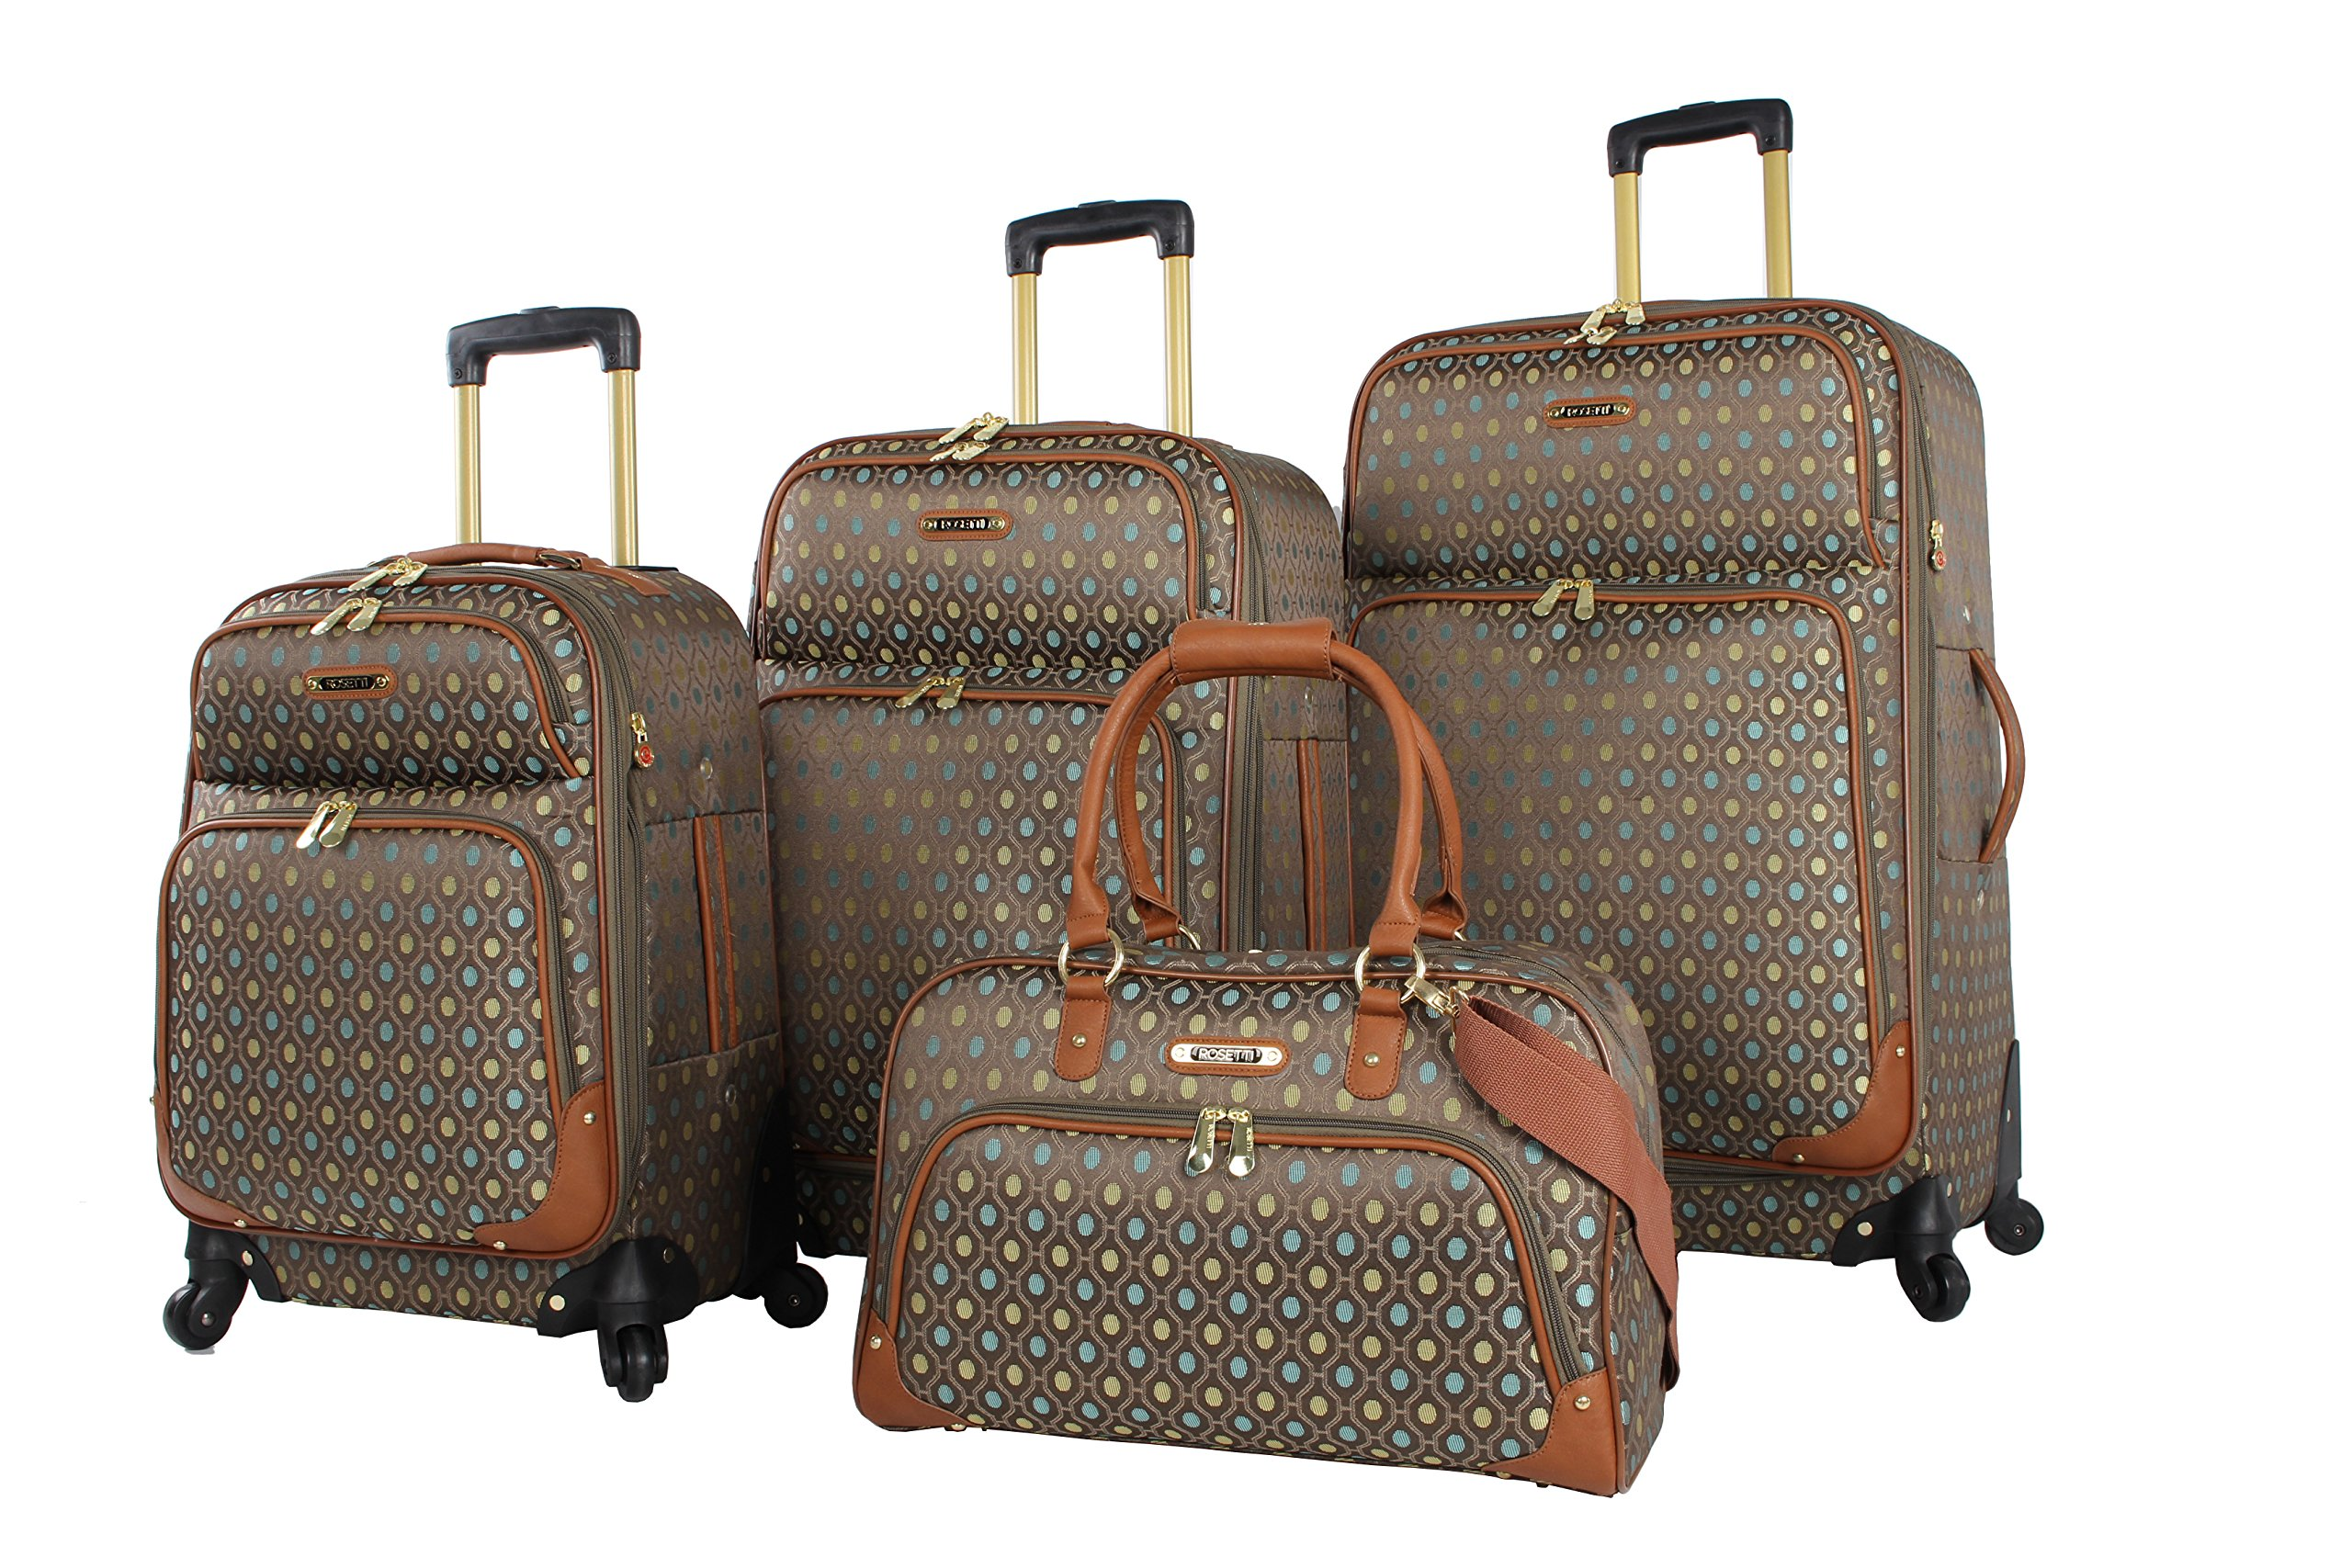 Rosetti Lighten Up Luggage Set 4 Piece Expandable Softside Suitcase With Spinner Wheels (Lighten Up Aqua) by Rosetti